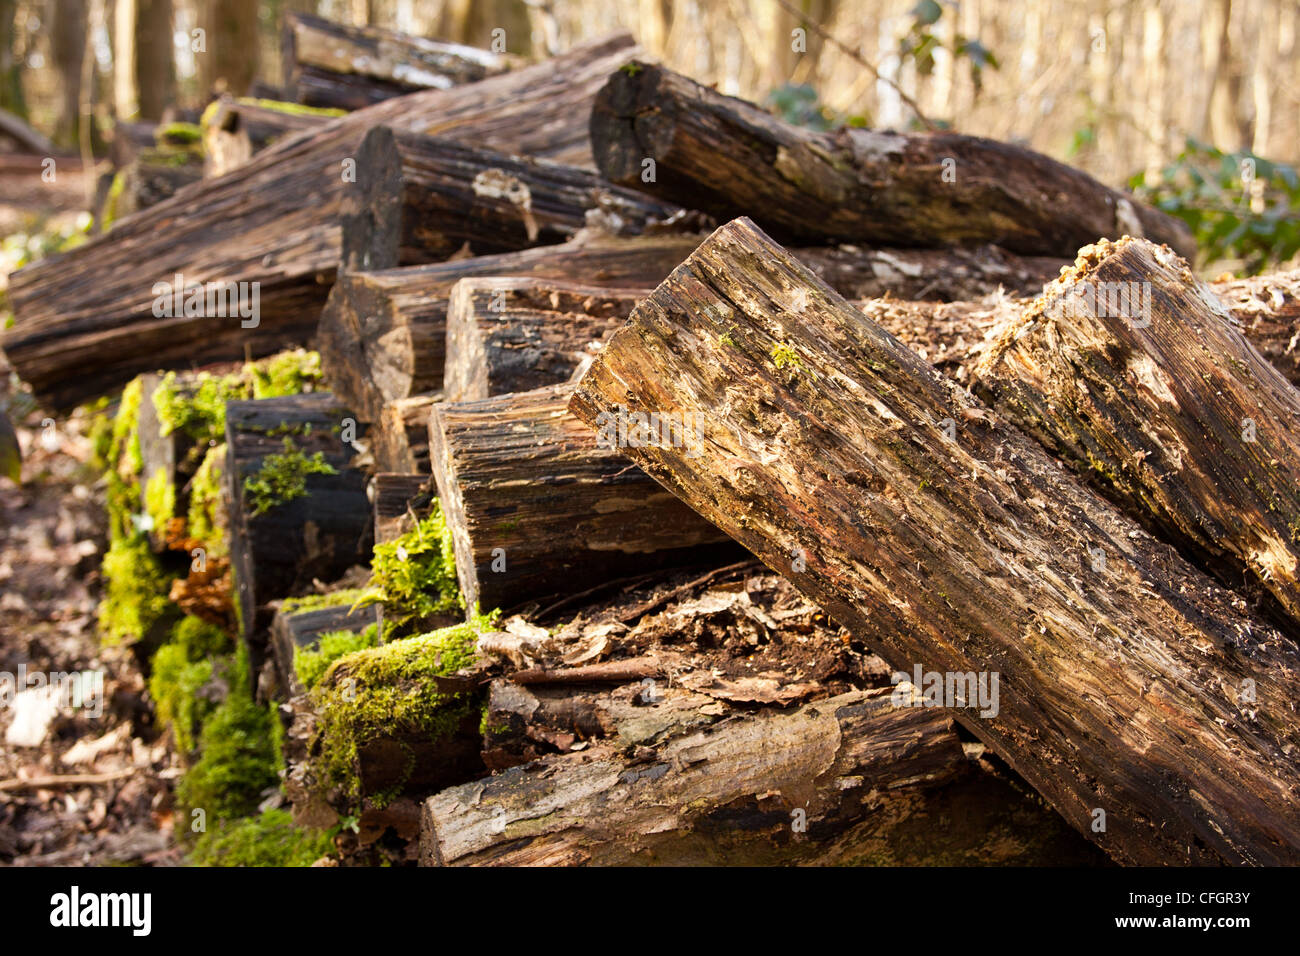 pile of logs decaying and rotting covered in moss giving feed and shelter to creepy crawlies. - Stock Image